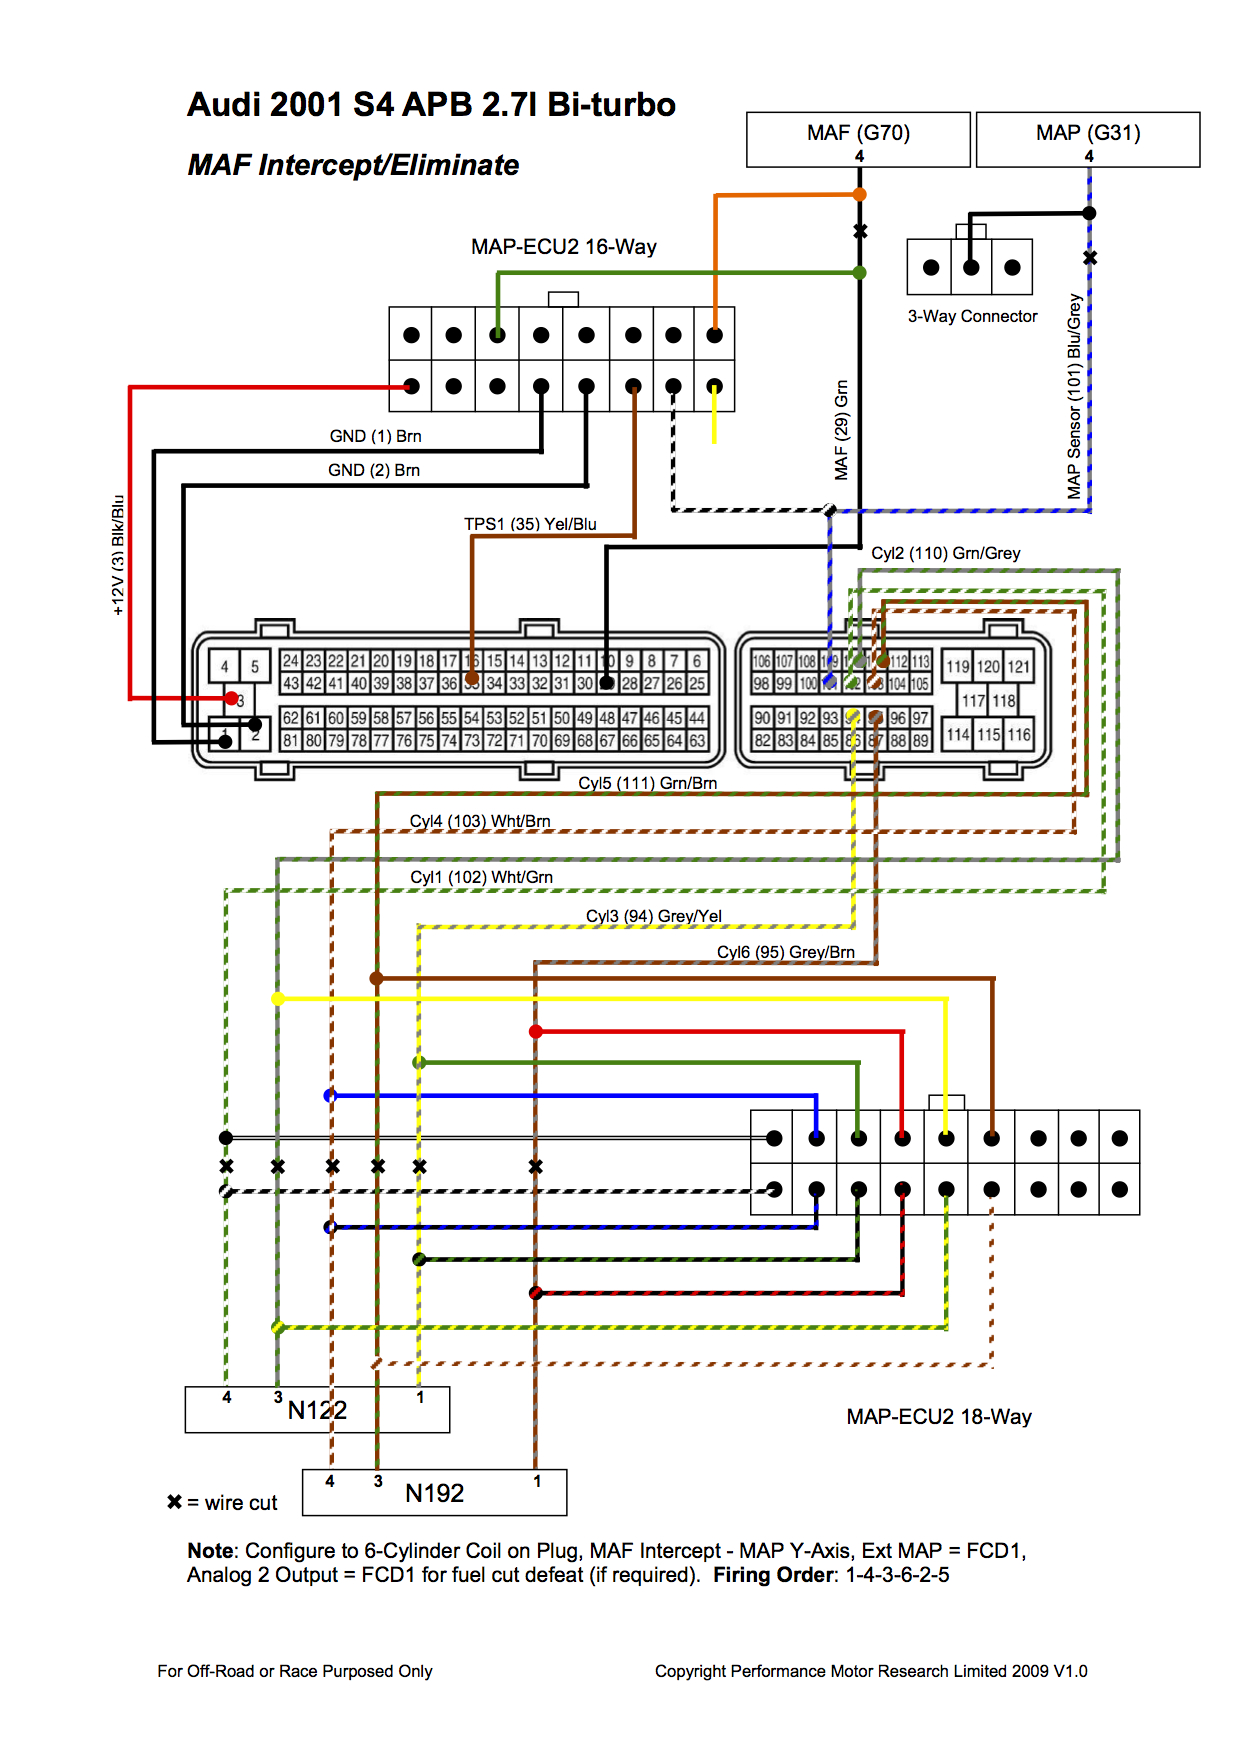 Audi S4 20011 ecu wiring diagram oil pump wiring diagram \u2022 wiring diagrams j 1995 Lexus SC 400 Coupe at suagrazia.org